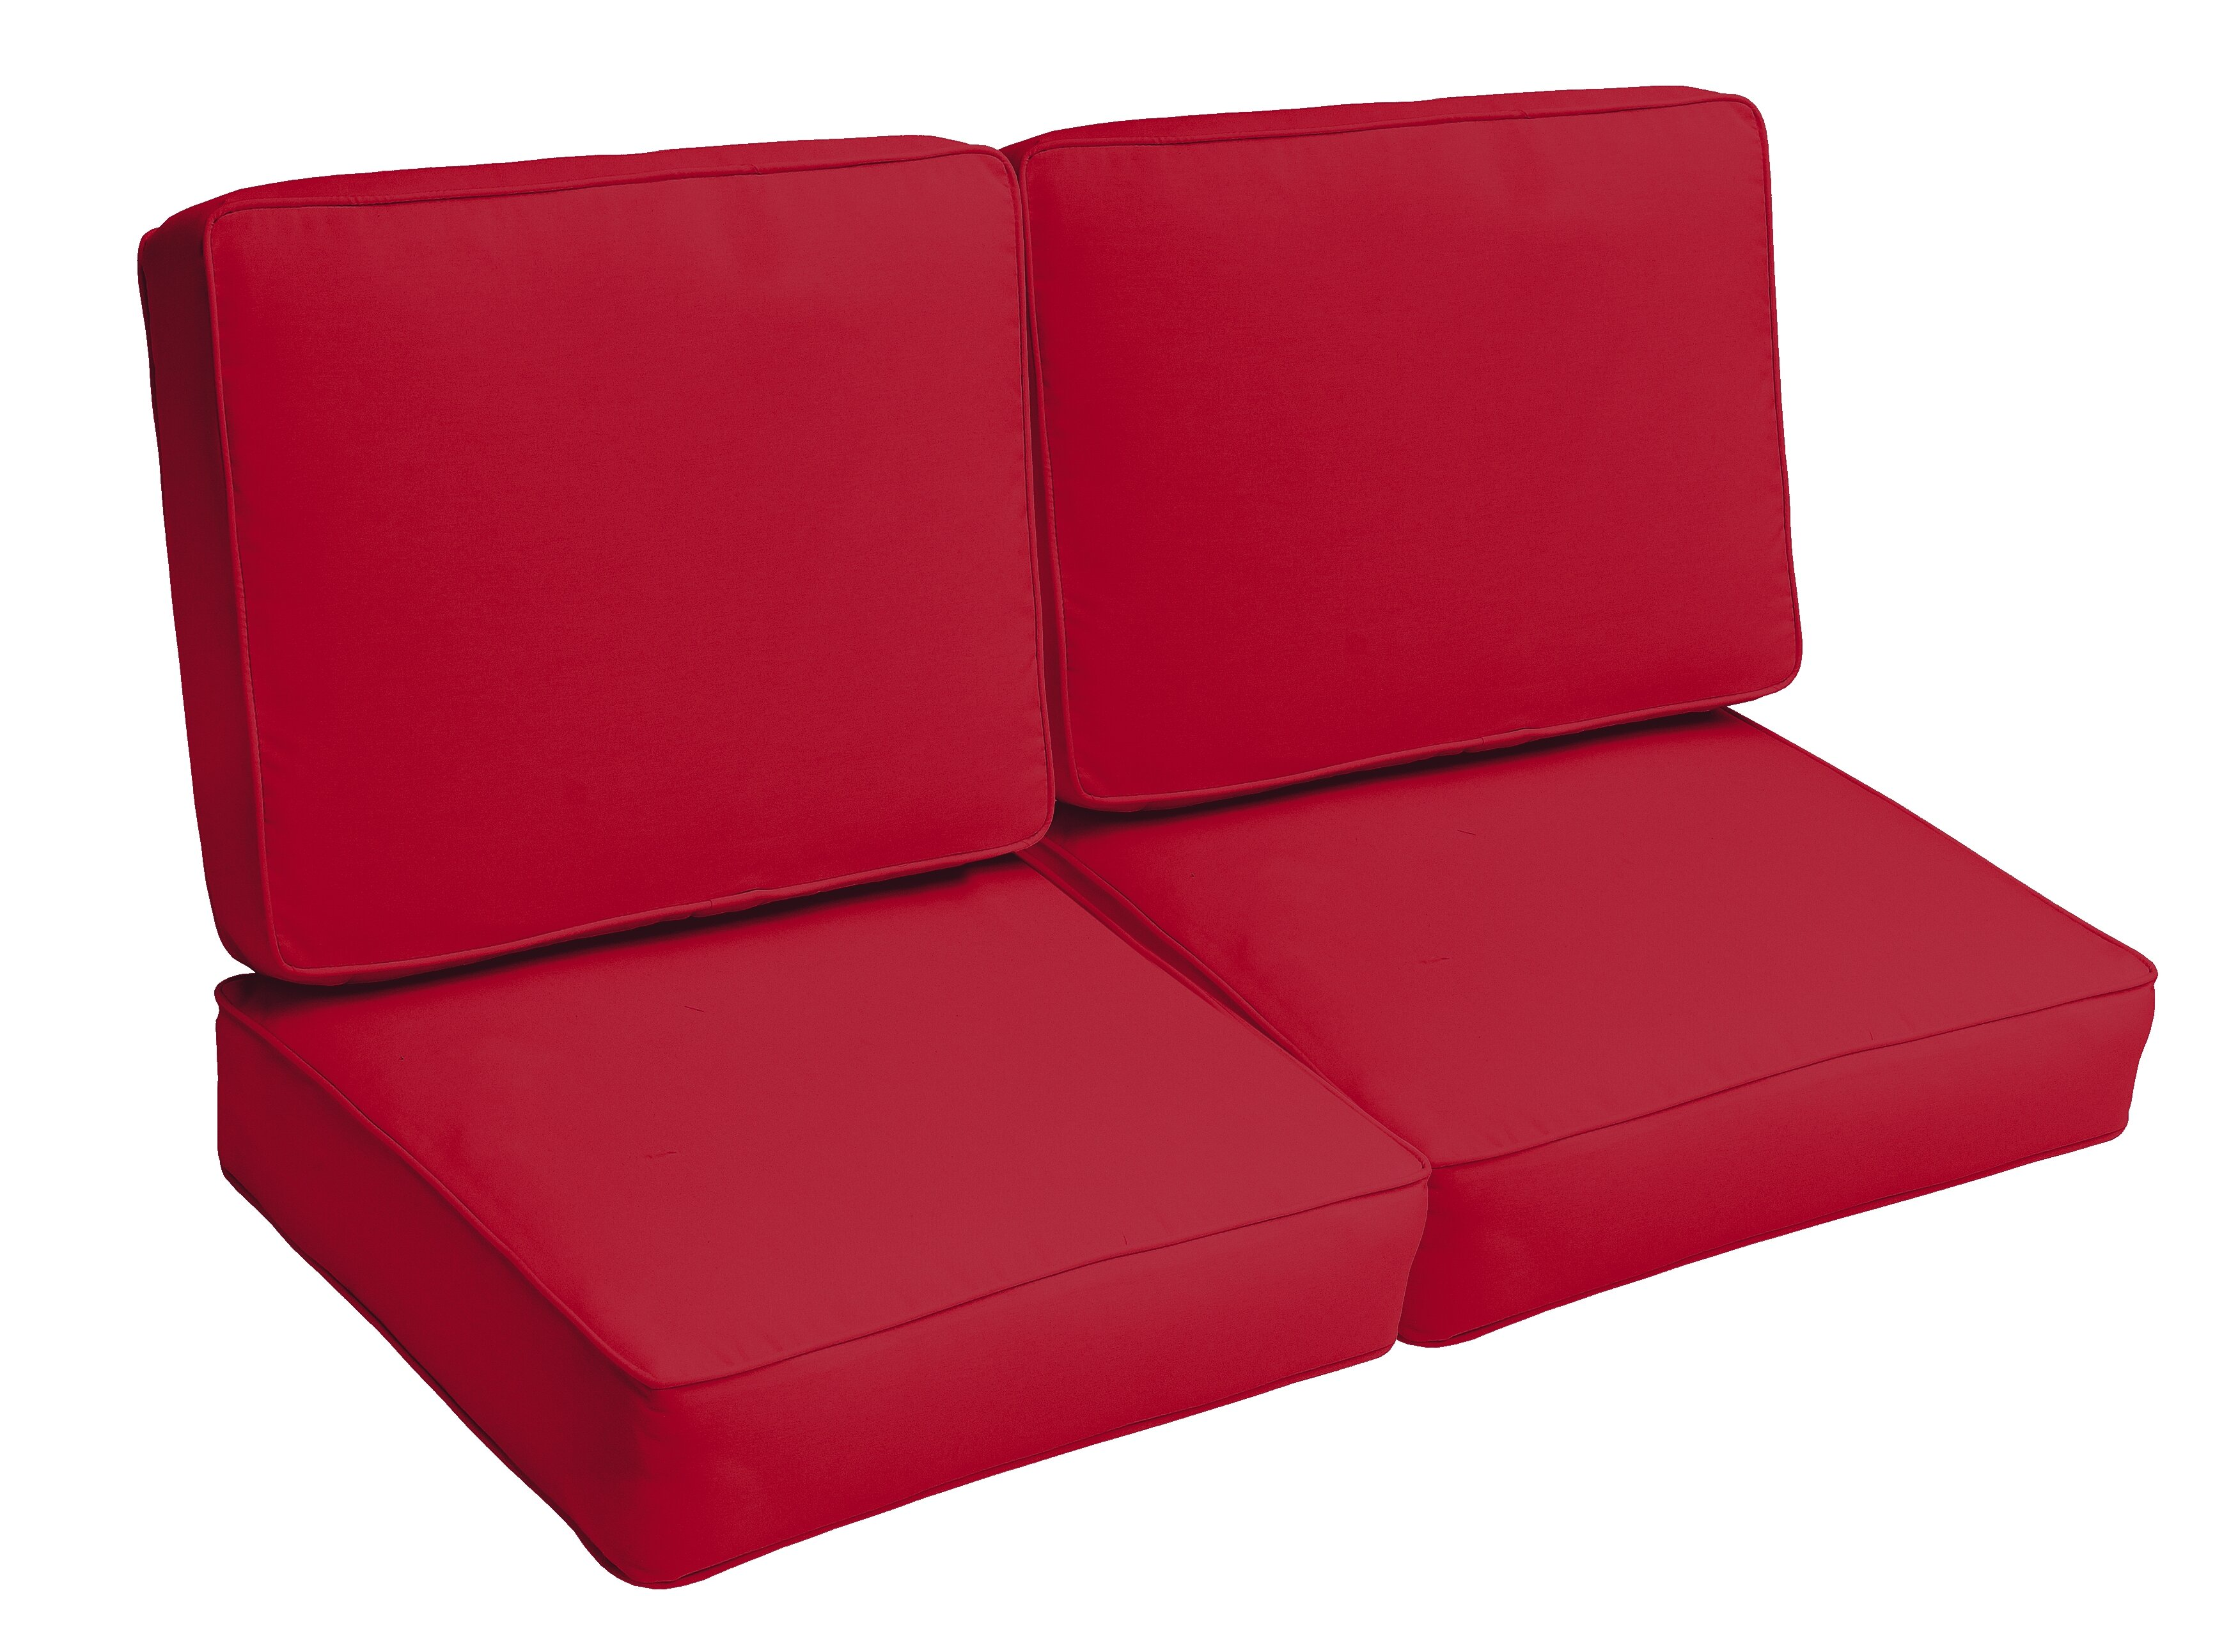 Red Barrel Studio Crimson Piped 4 Piece Indoor Outdoor Loveseat Cushion Set Wayfair